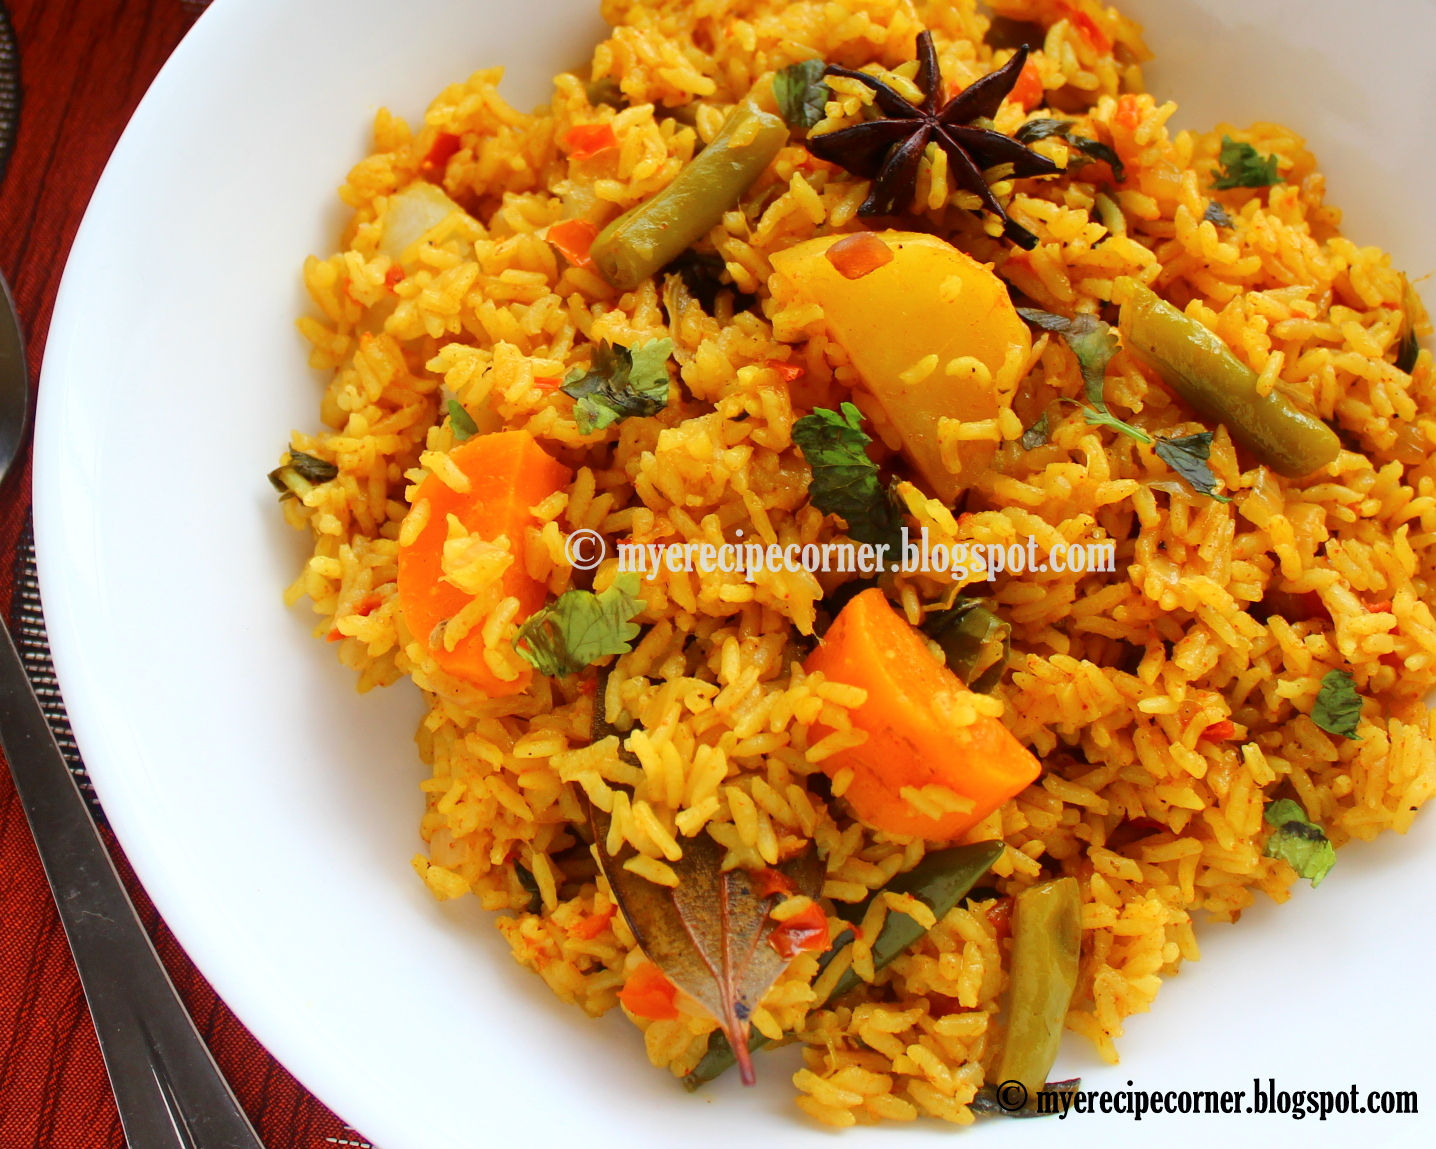 Chettinad vegetable biryani kaikari biryani chettinad recipes kaikari biryani forumfinder Gallery